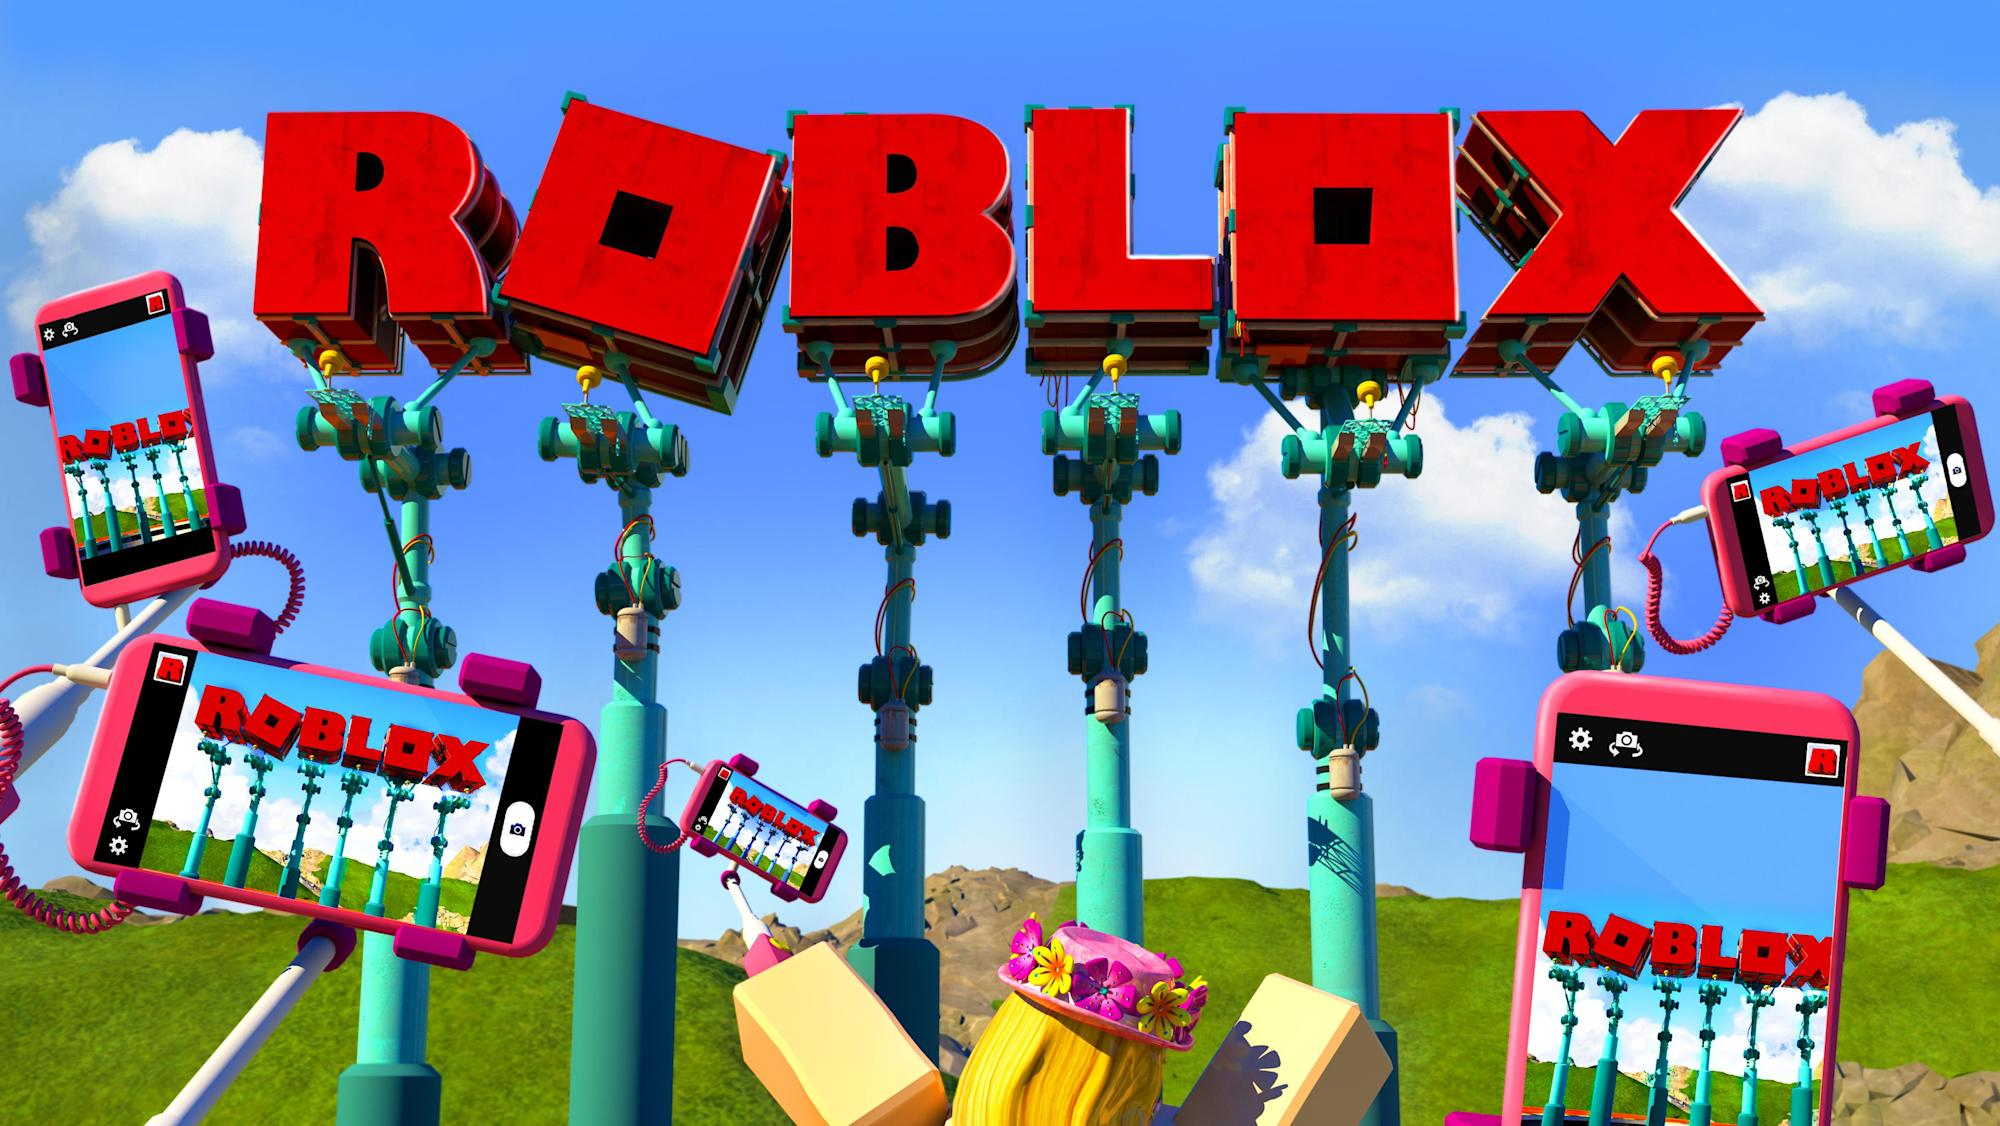 Roblox' Revenue Up 87% Year-Over-Year to $92 Million (Analys